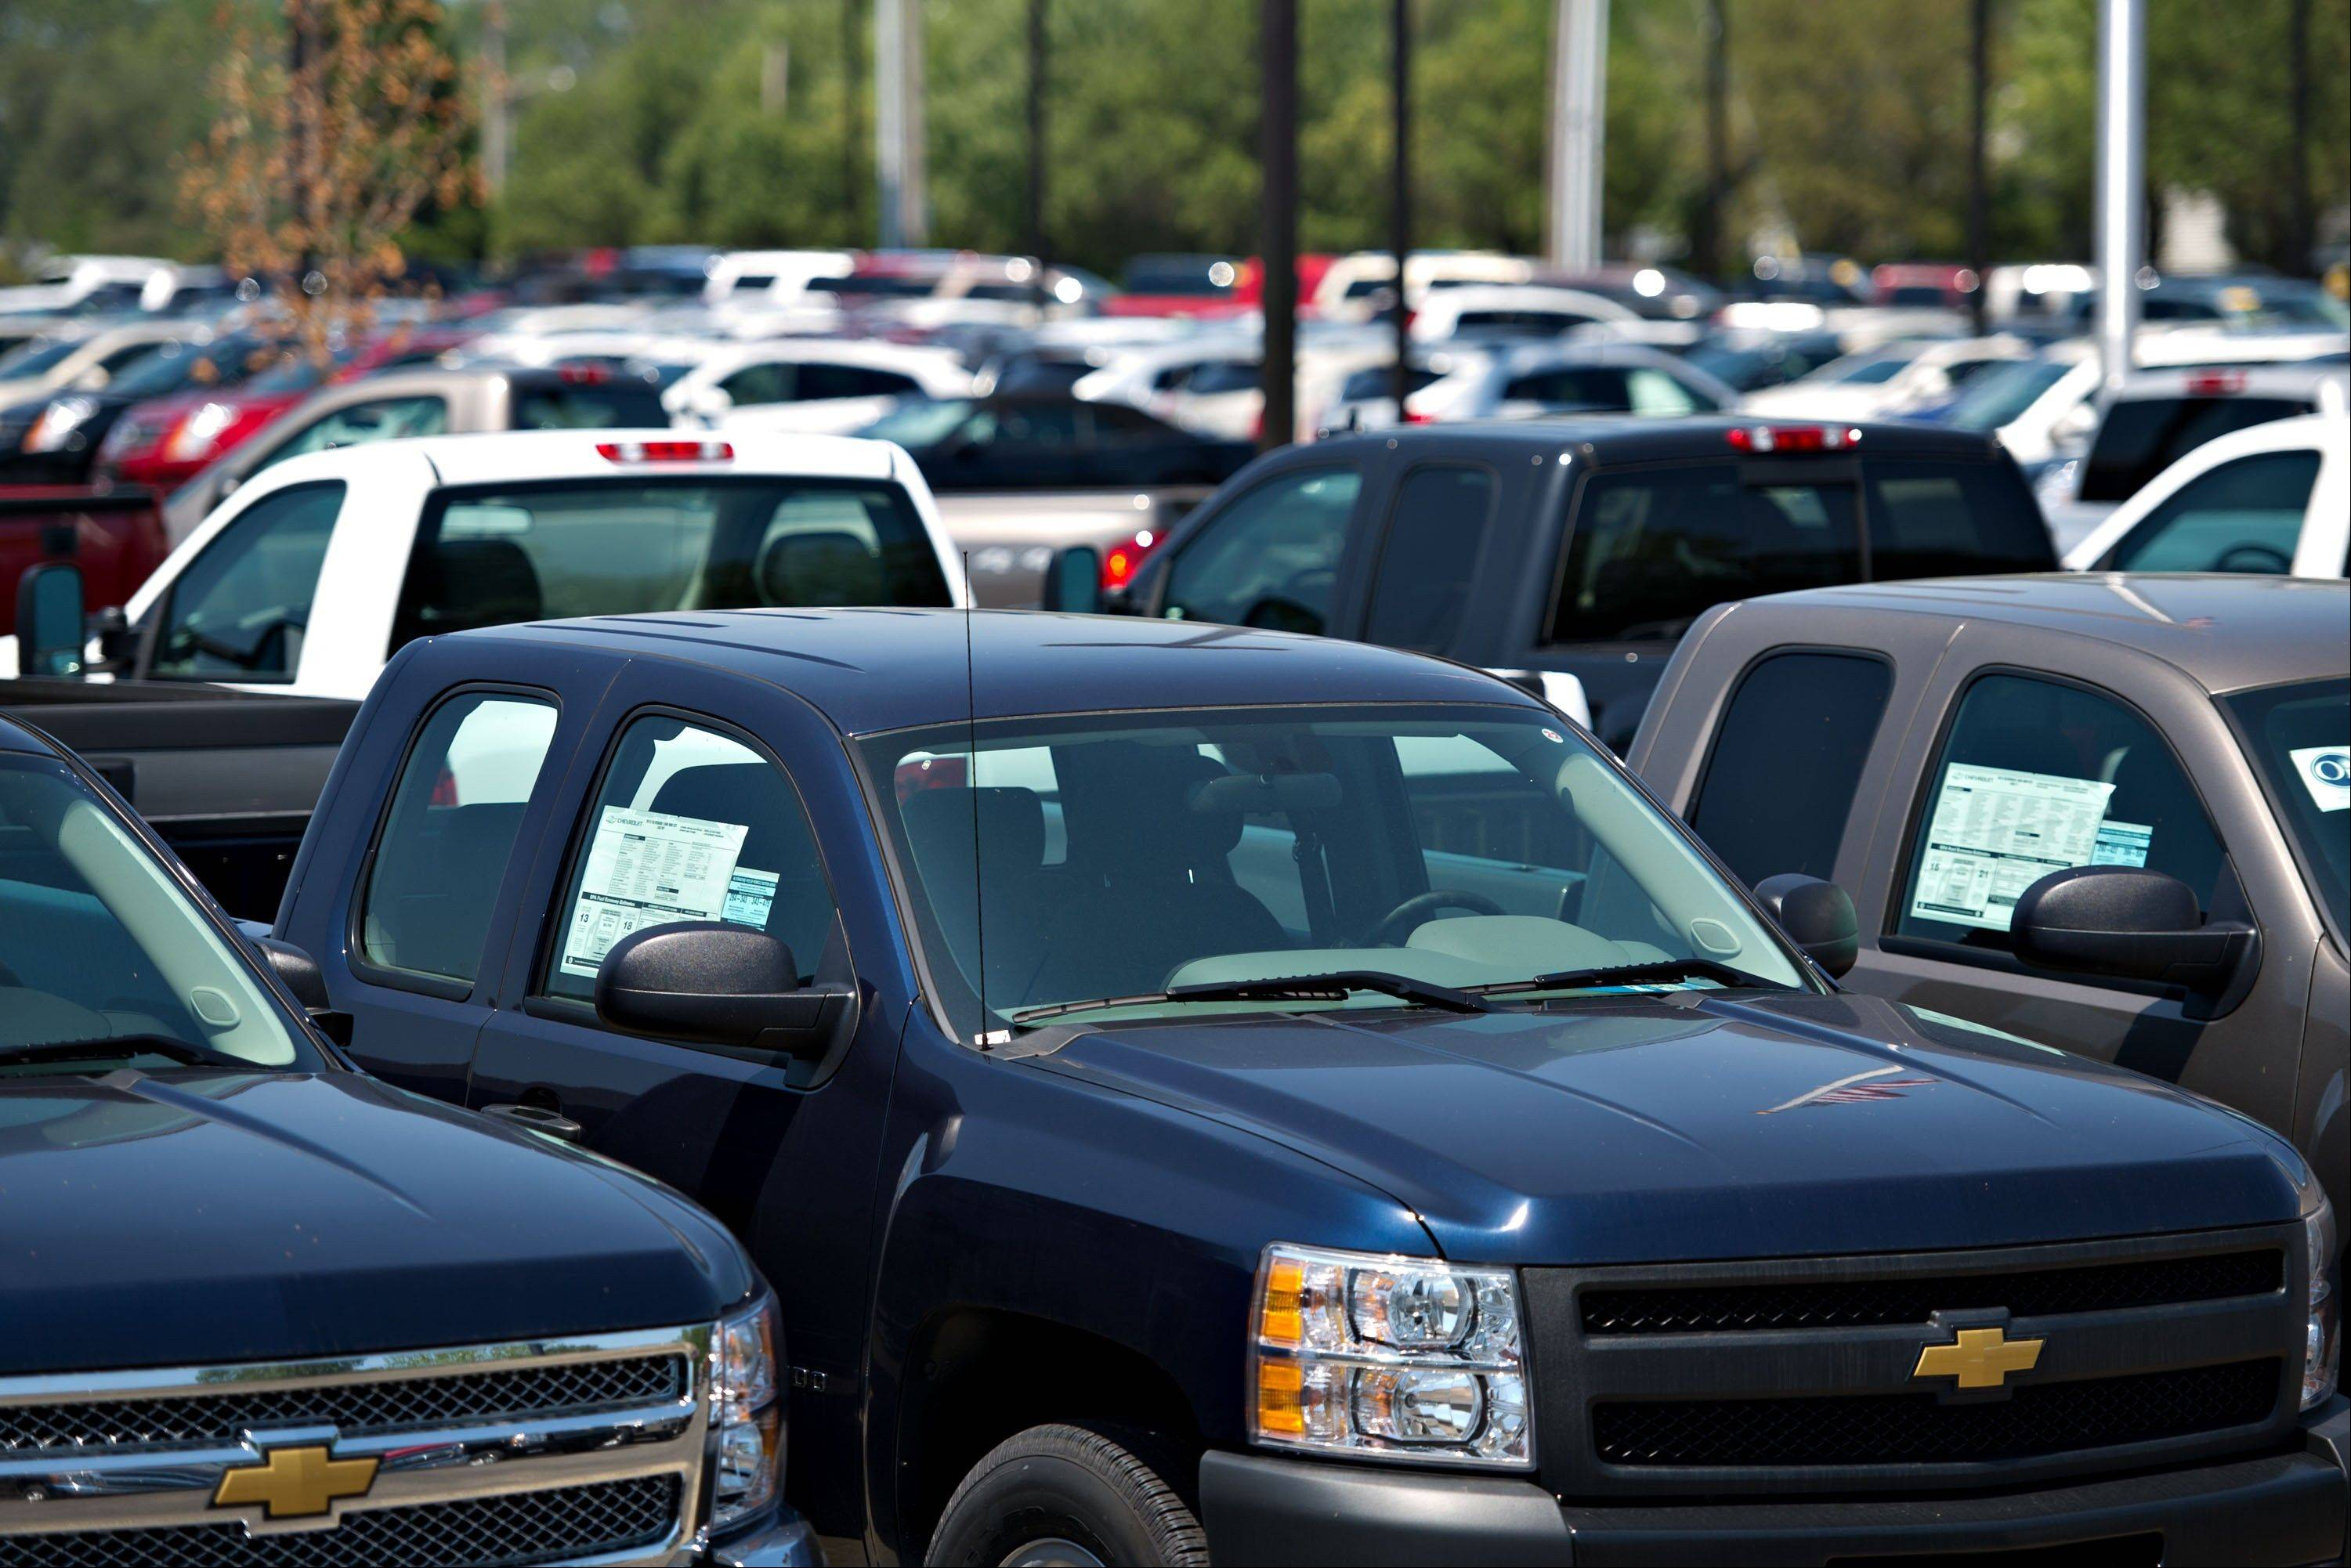 Chevy Silverado pickup trucks sit on display at a General Motors Co. dealership in Peoria.